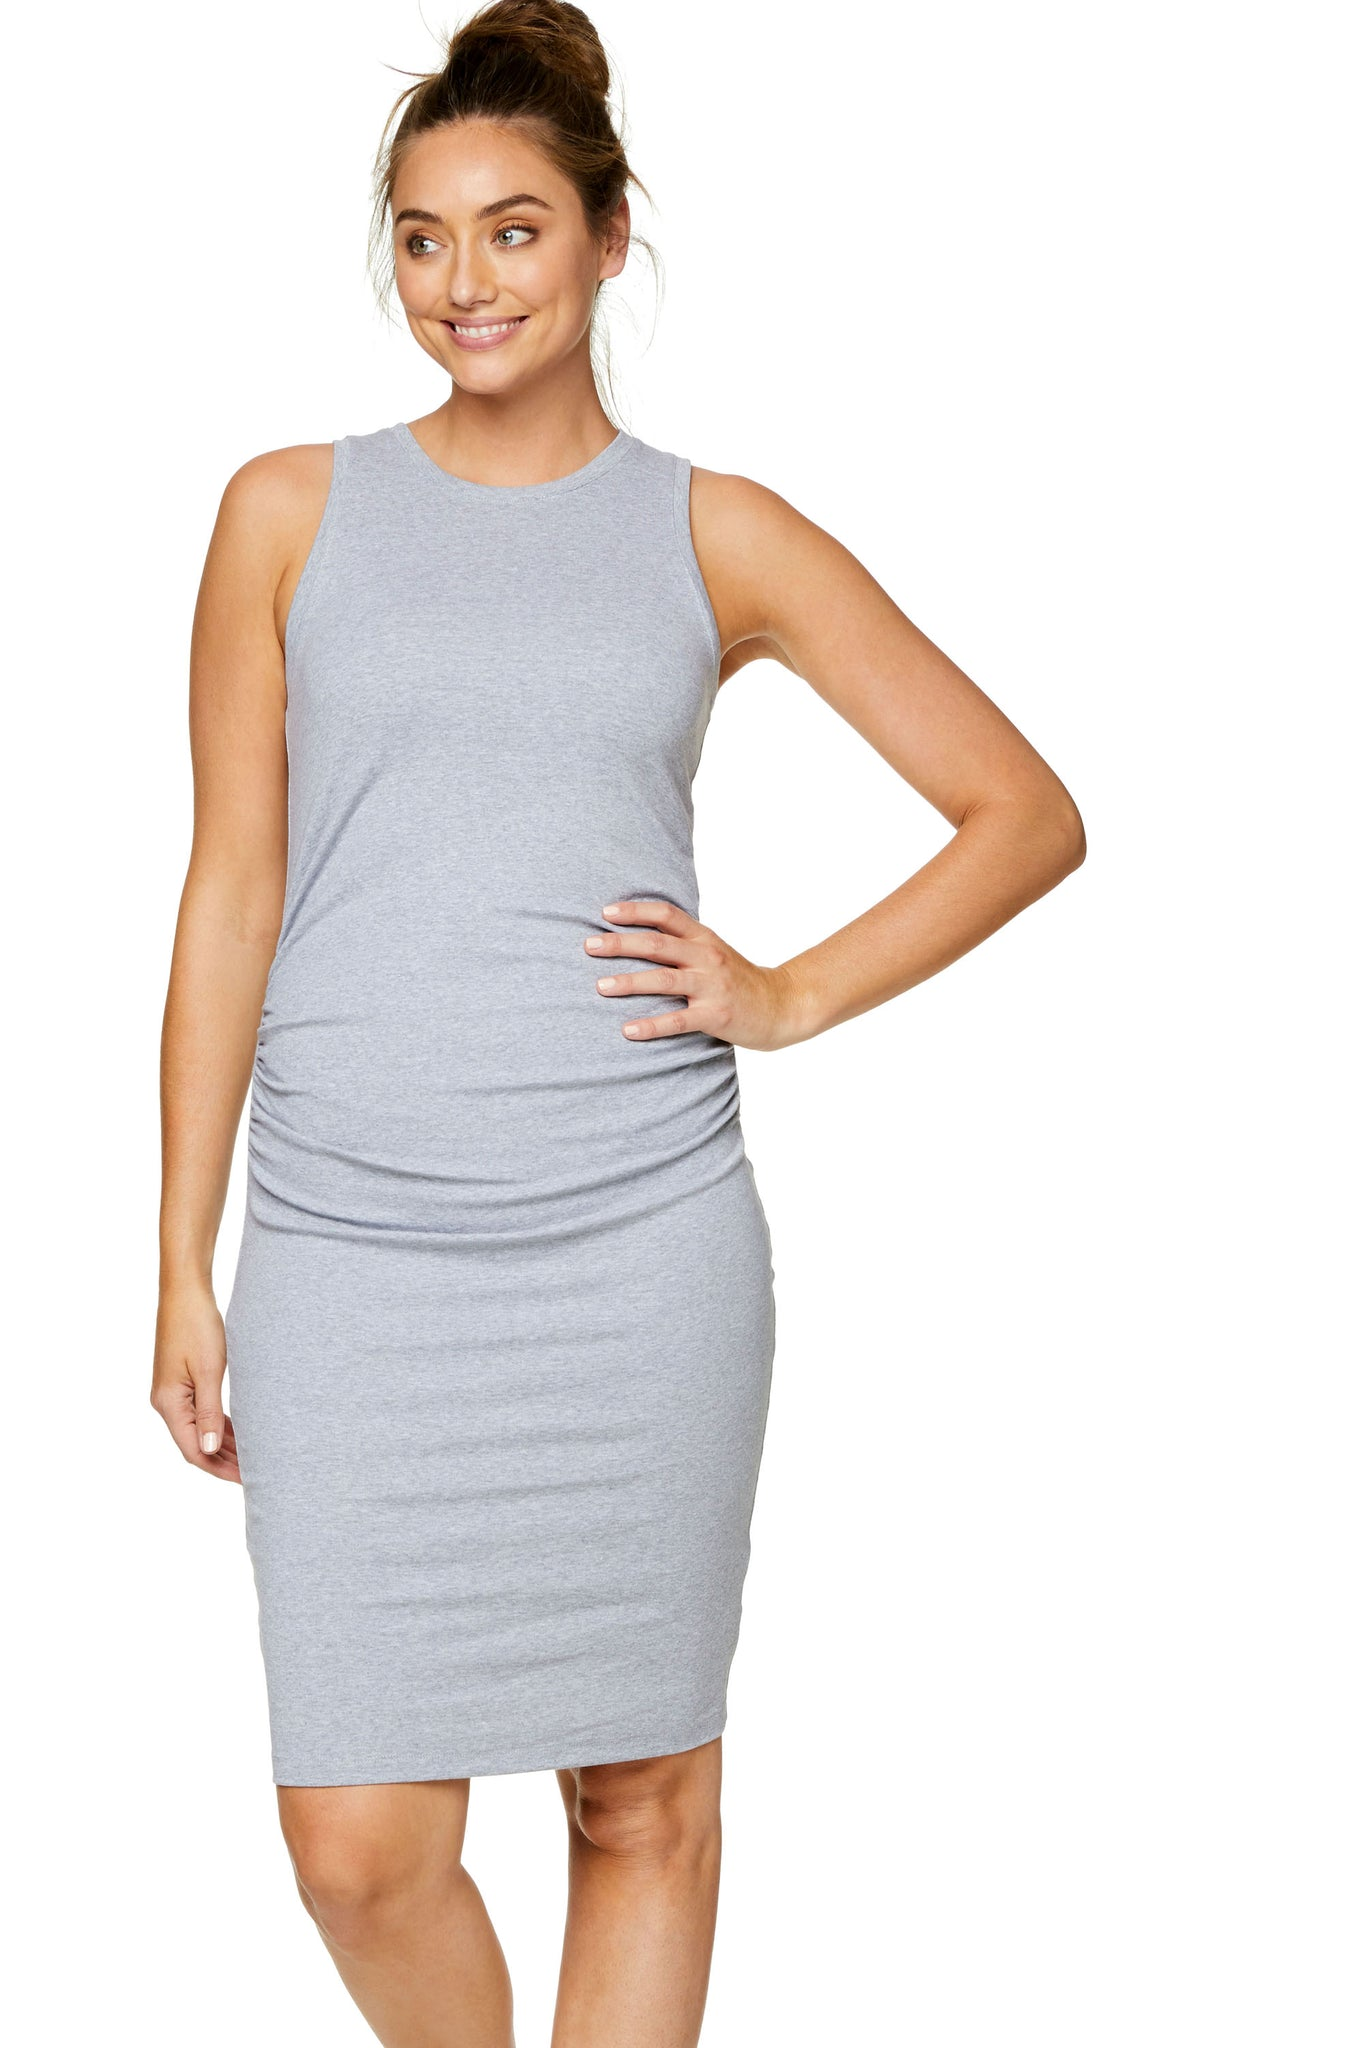 Bodycon maternity dress - grey 5